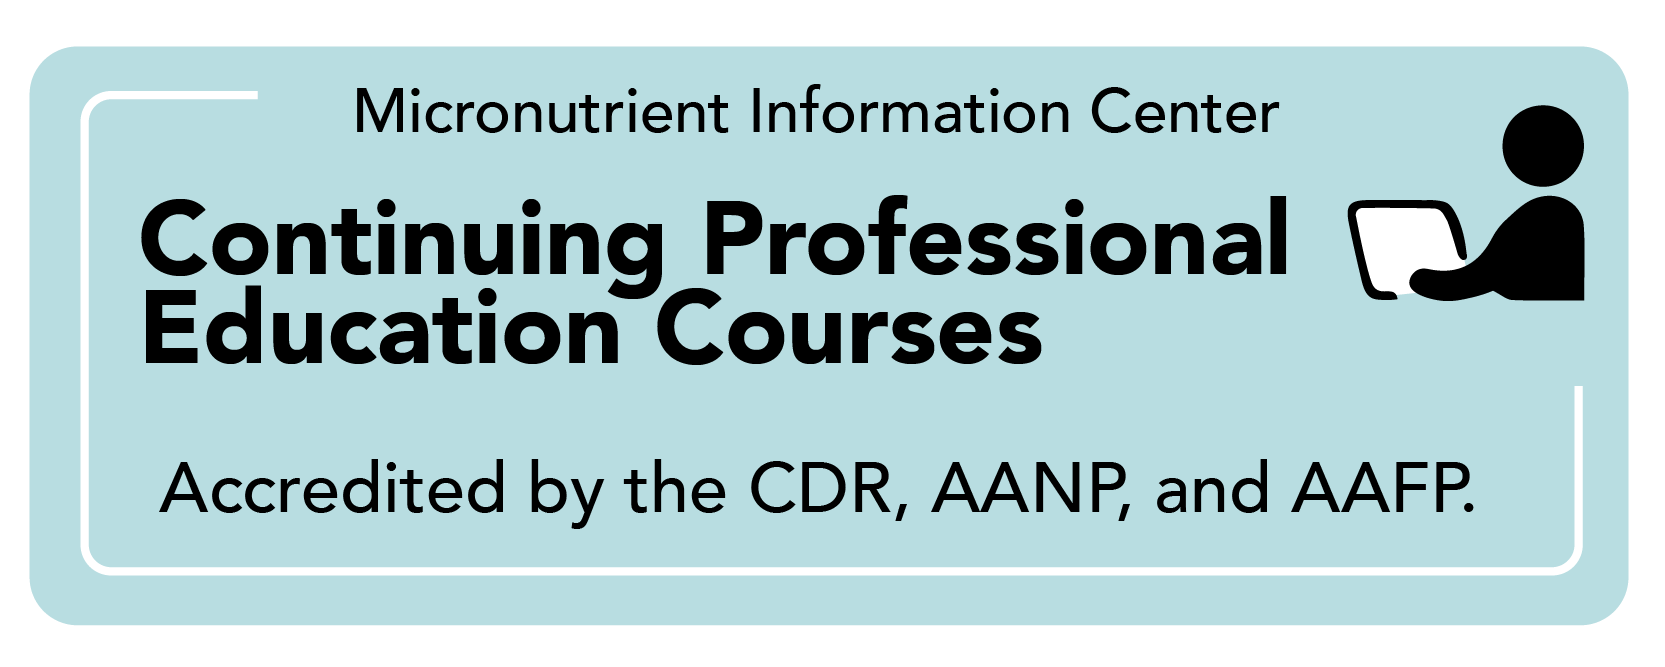 """button that links to """"Meeting Micronutrient Needs"""" continuing education course page"""